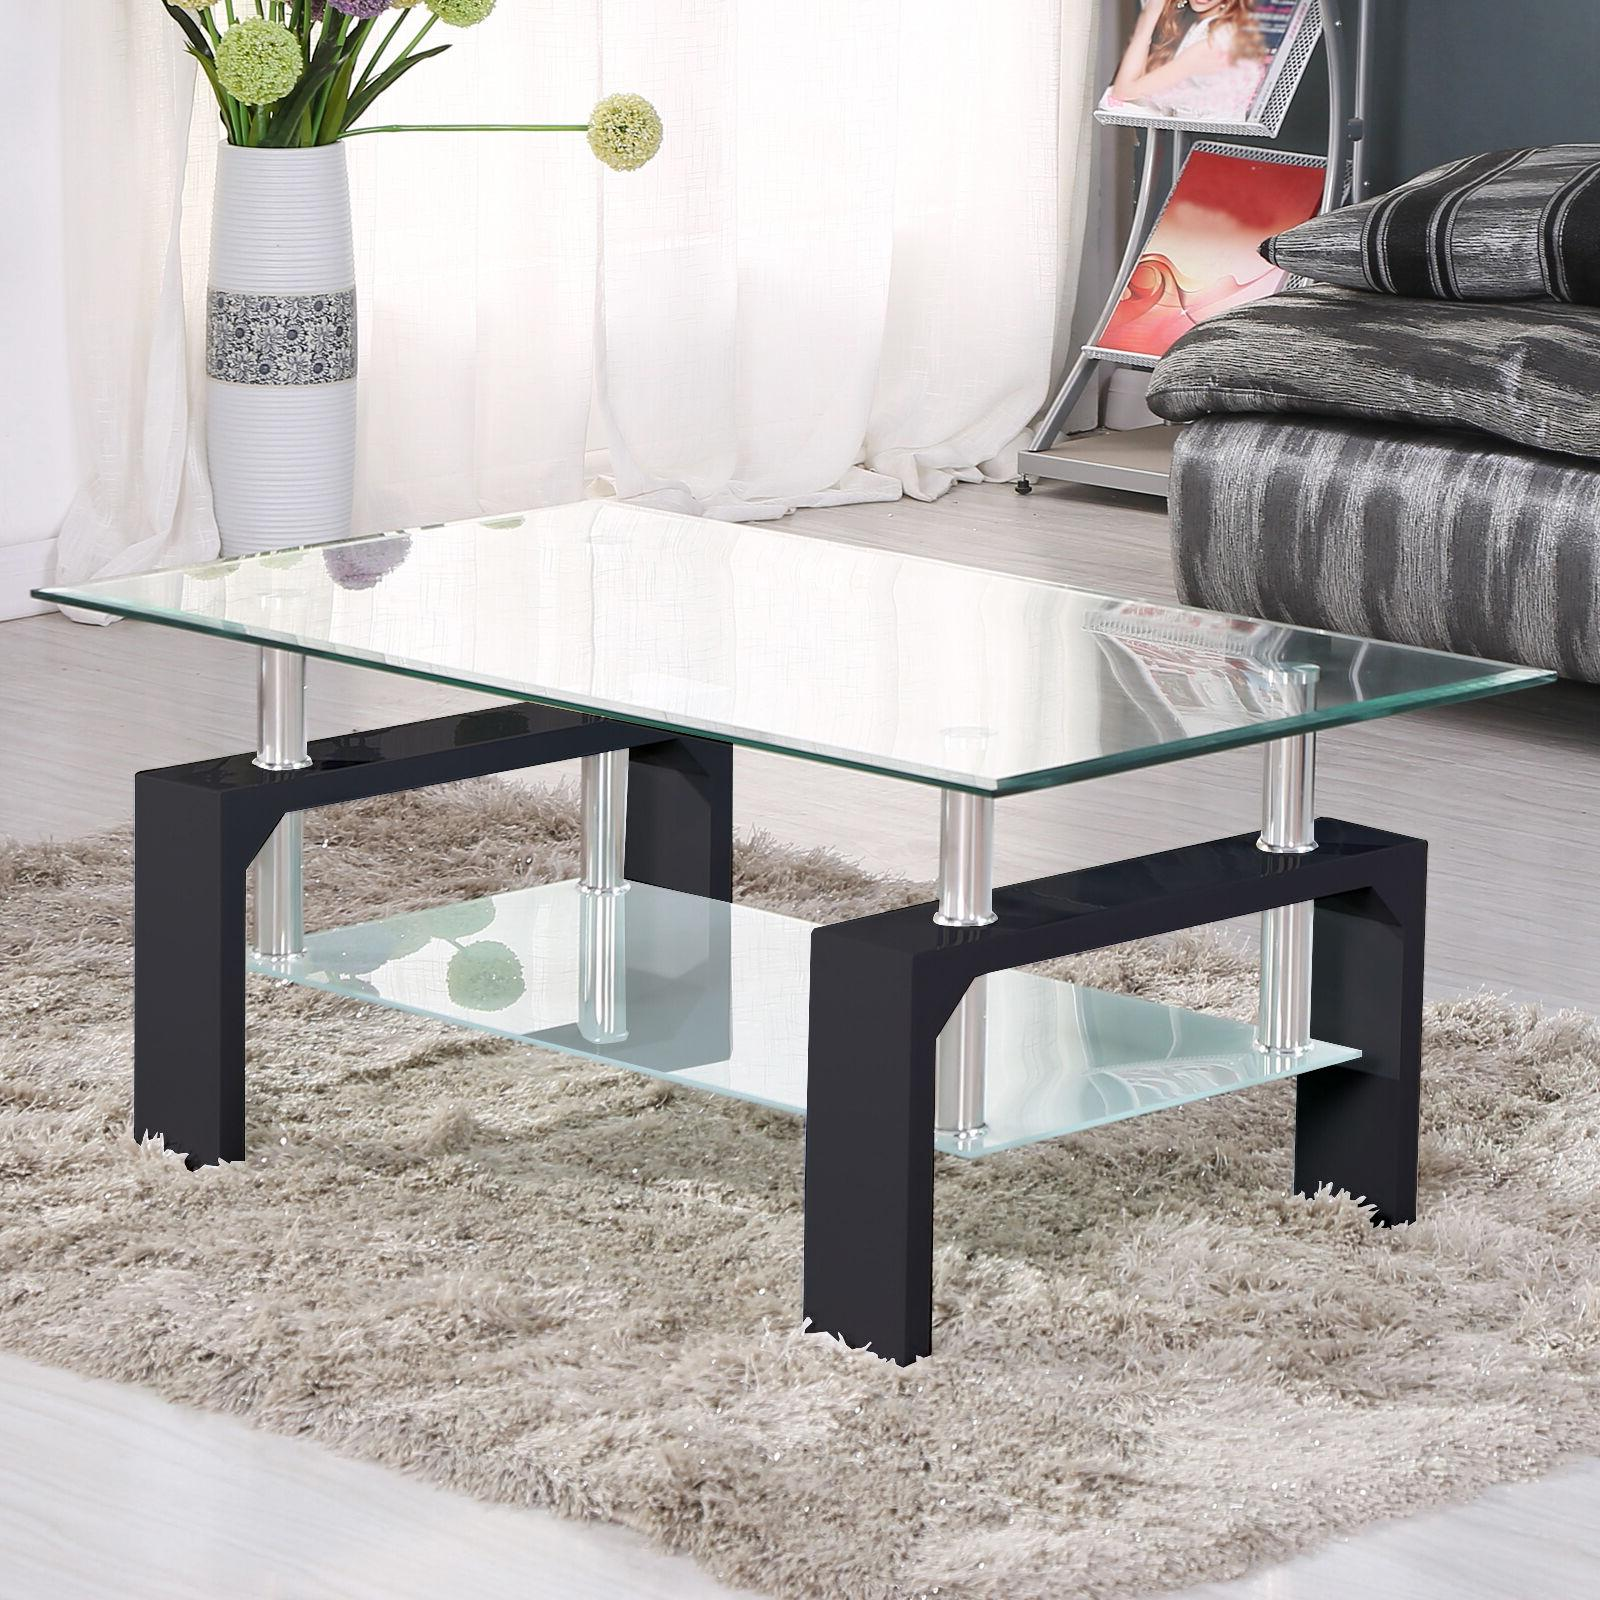 Glass Coffee Table Set Rectangular Wood Chrome Living Room F